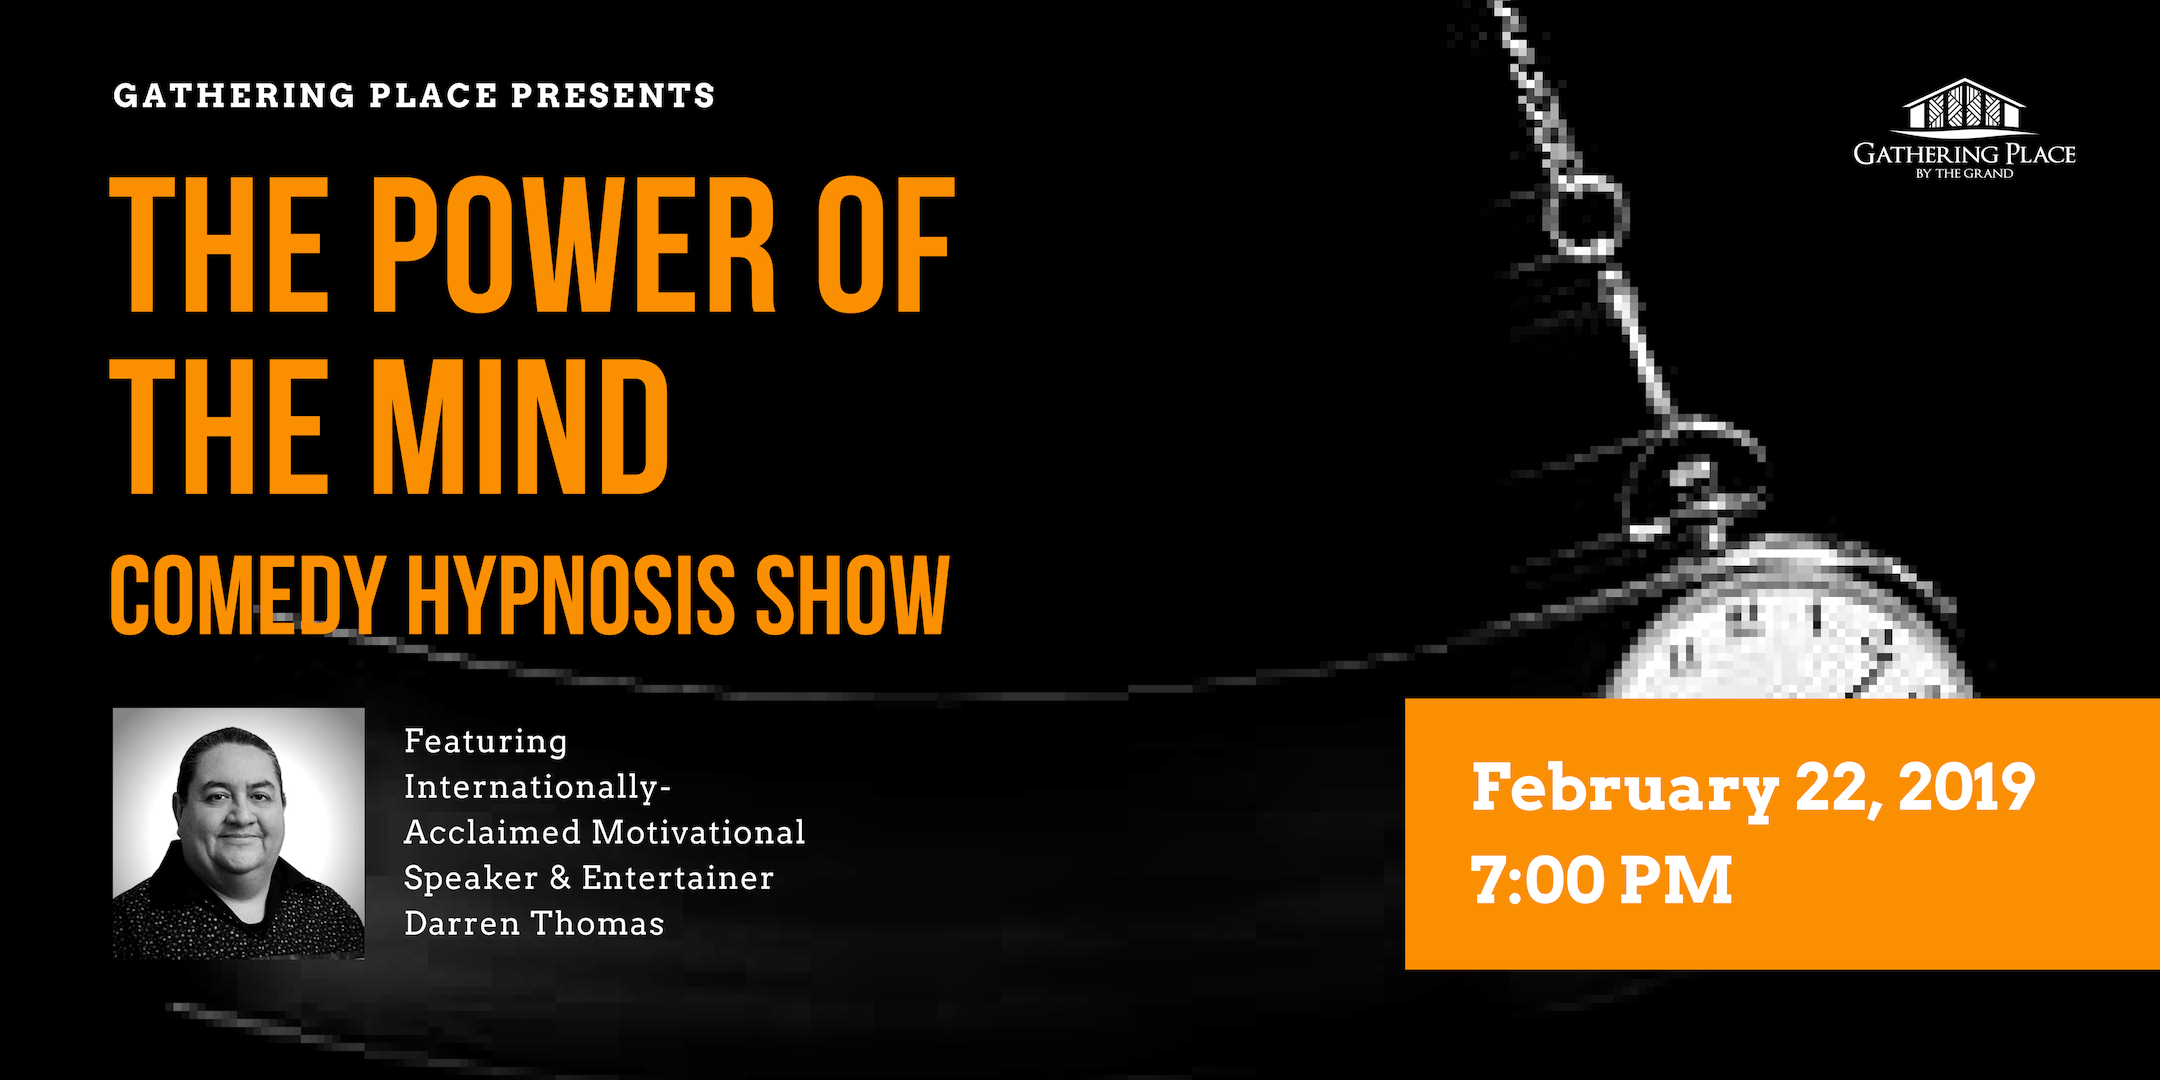 The Power of the Mind: Comedy Hypnosis Show